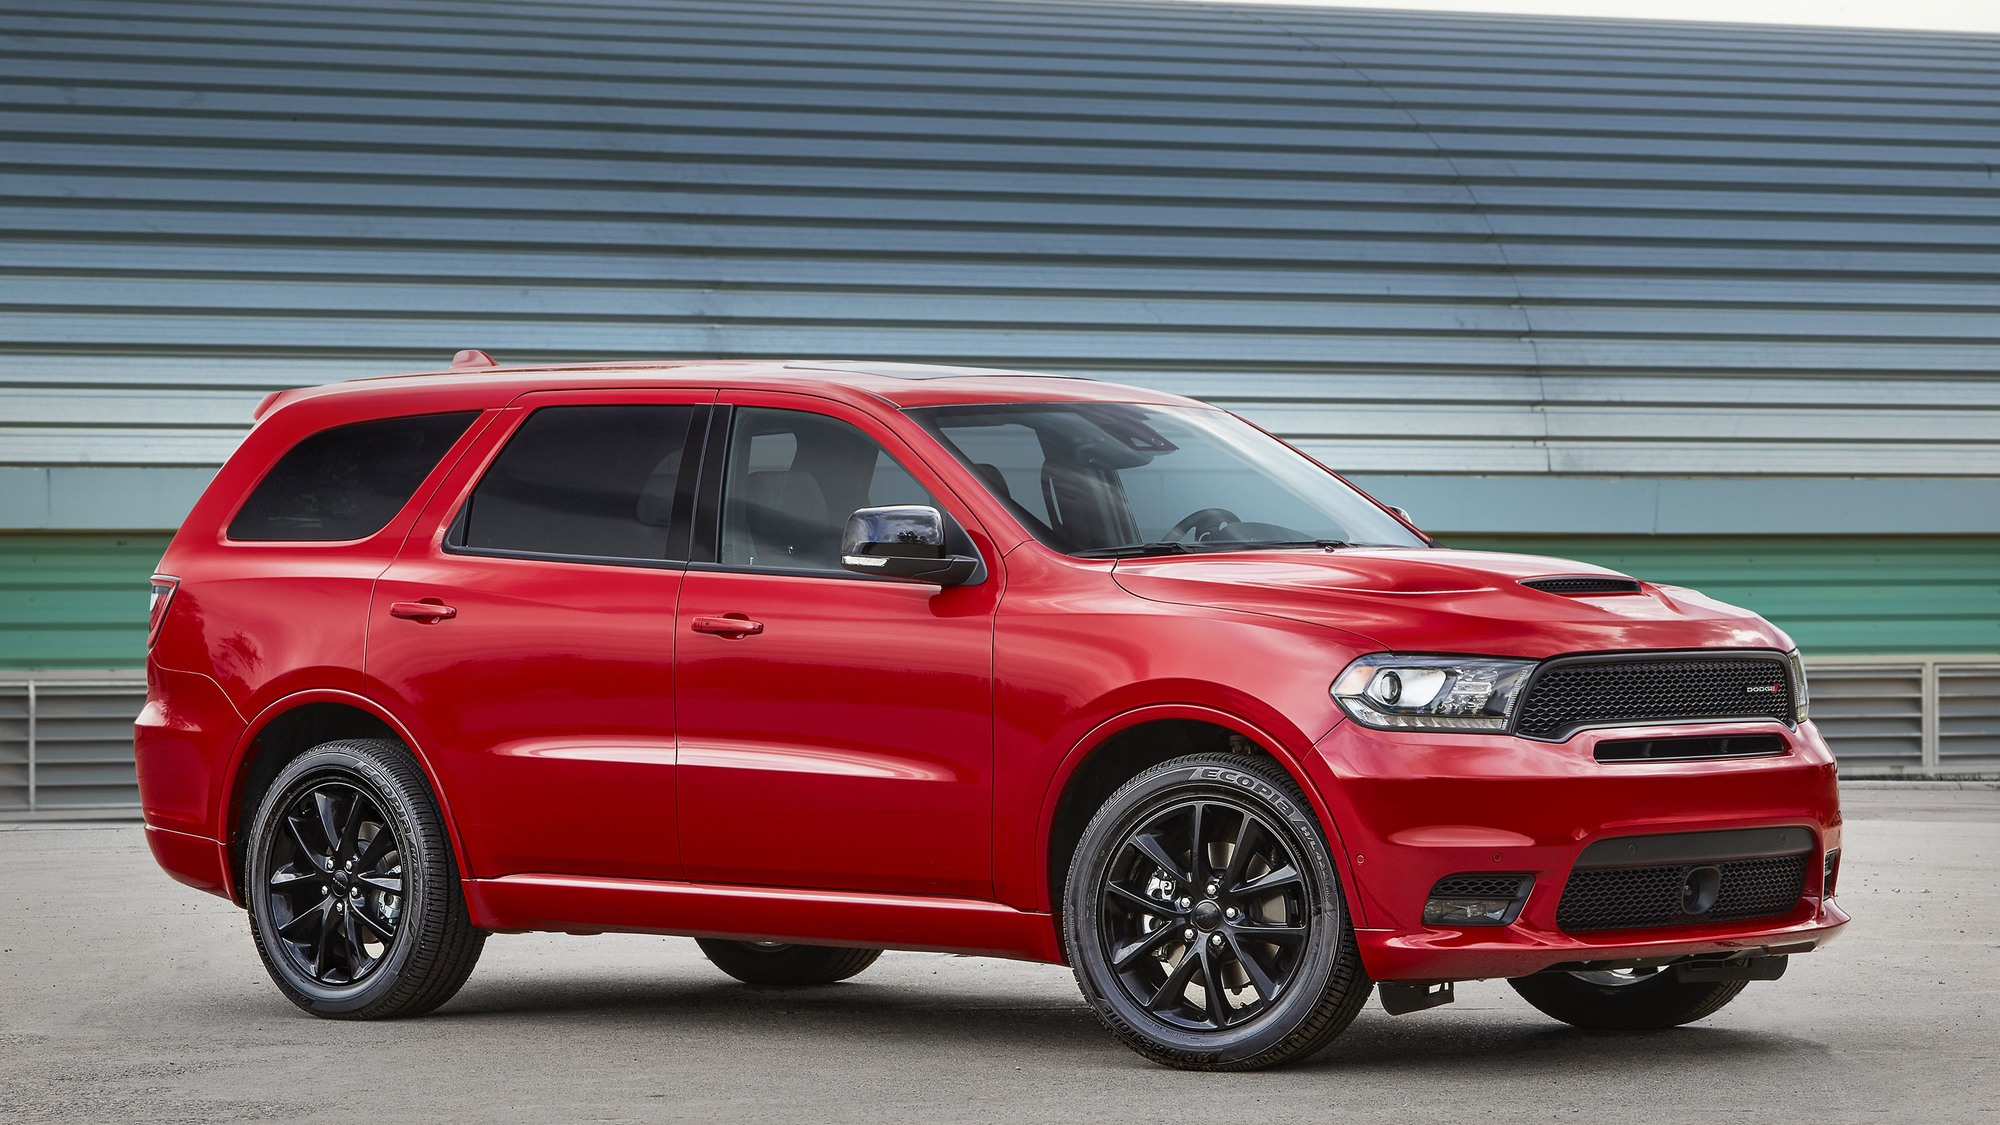 Dodge Durango STR 797 HP concept